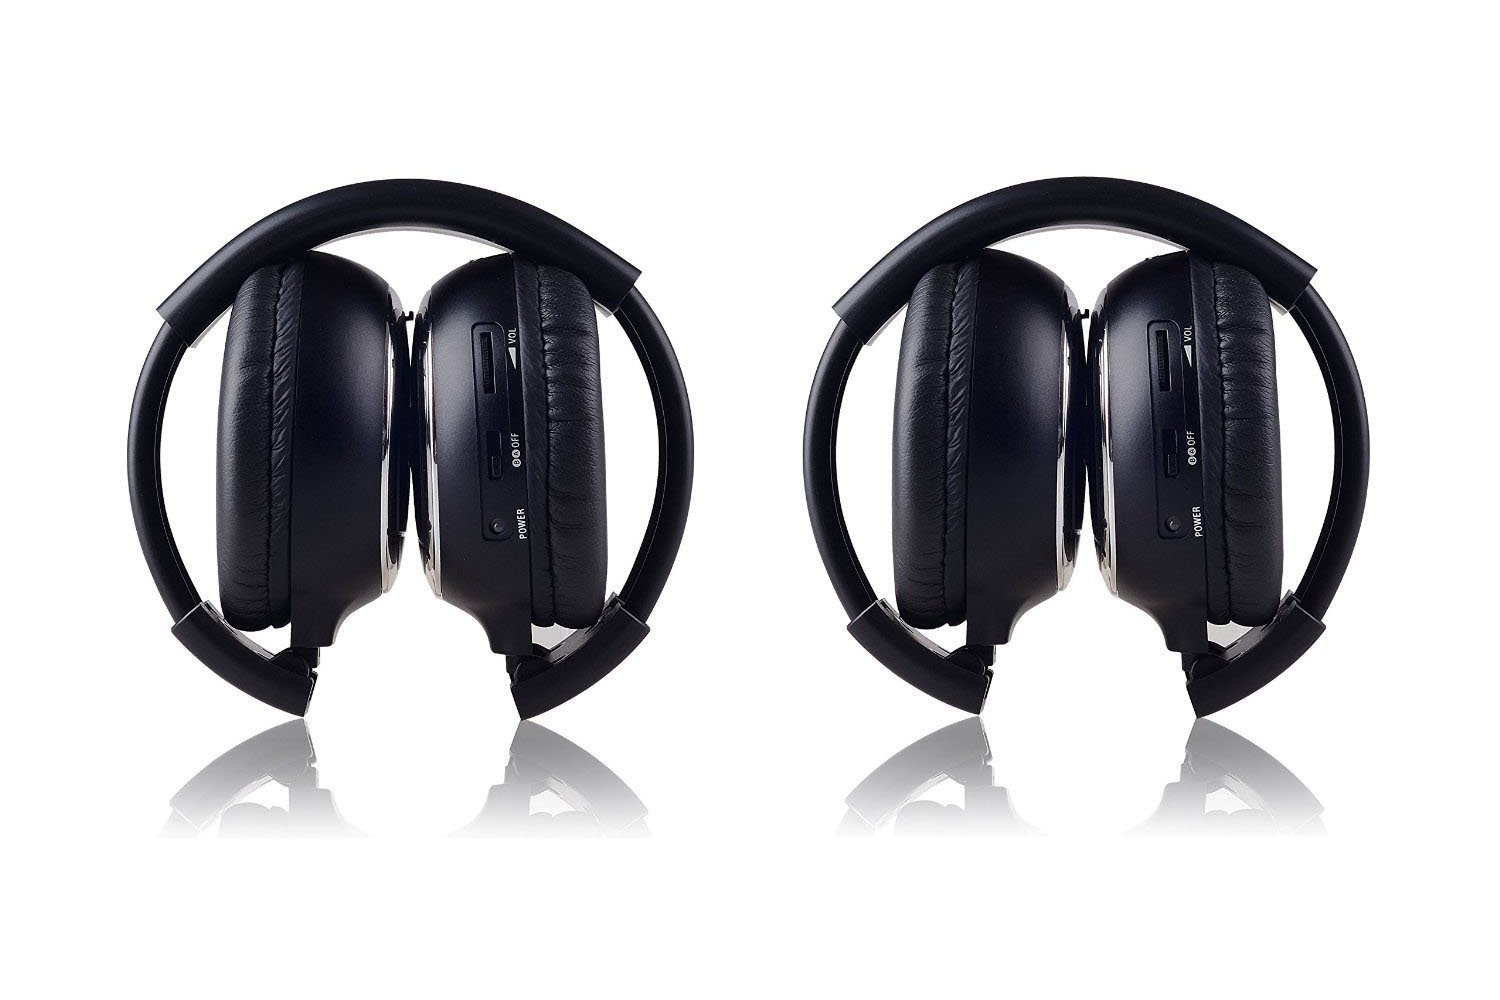 Crusar Wireless Two Channel Foldable Headphones